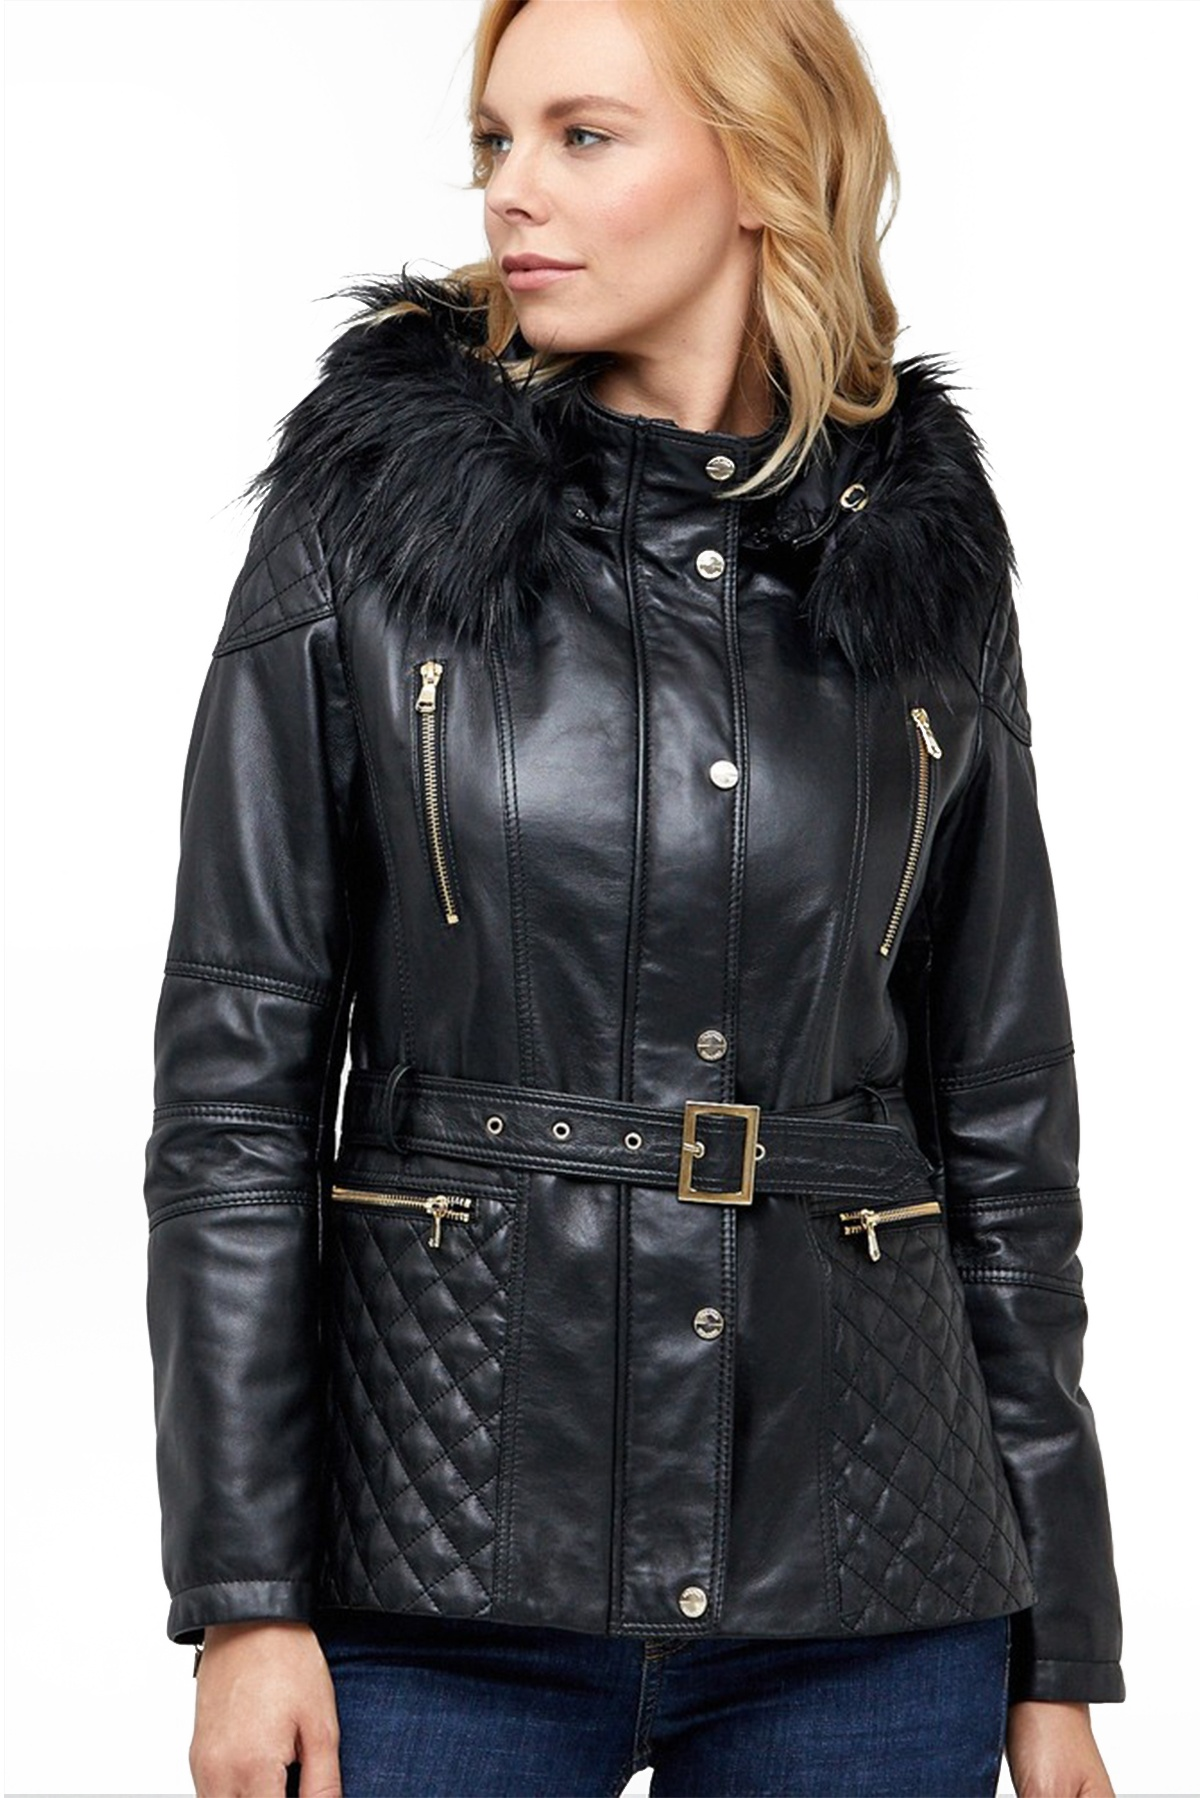 real leather jacket size 18